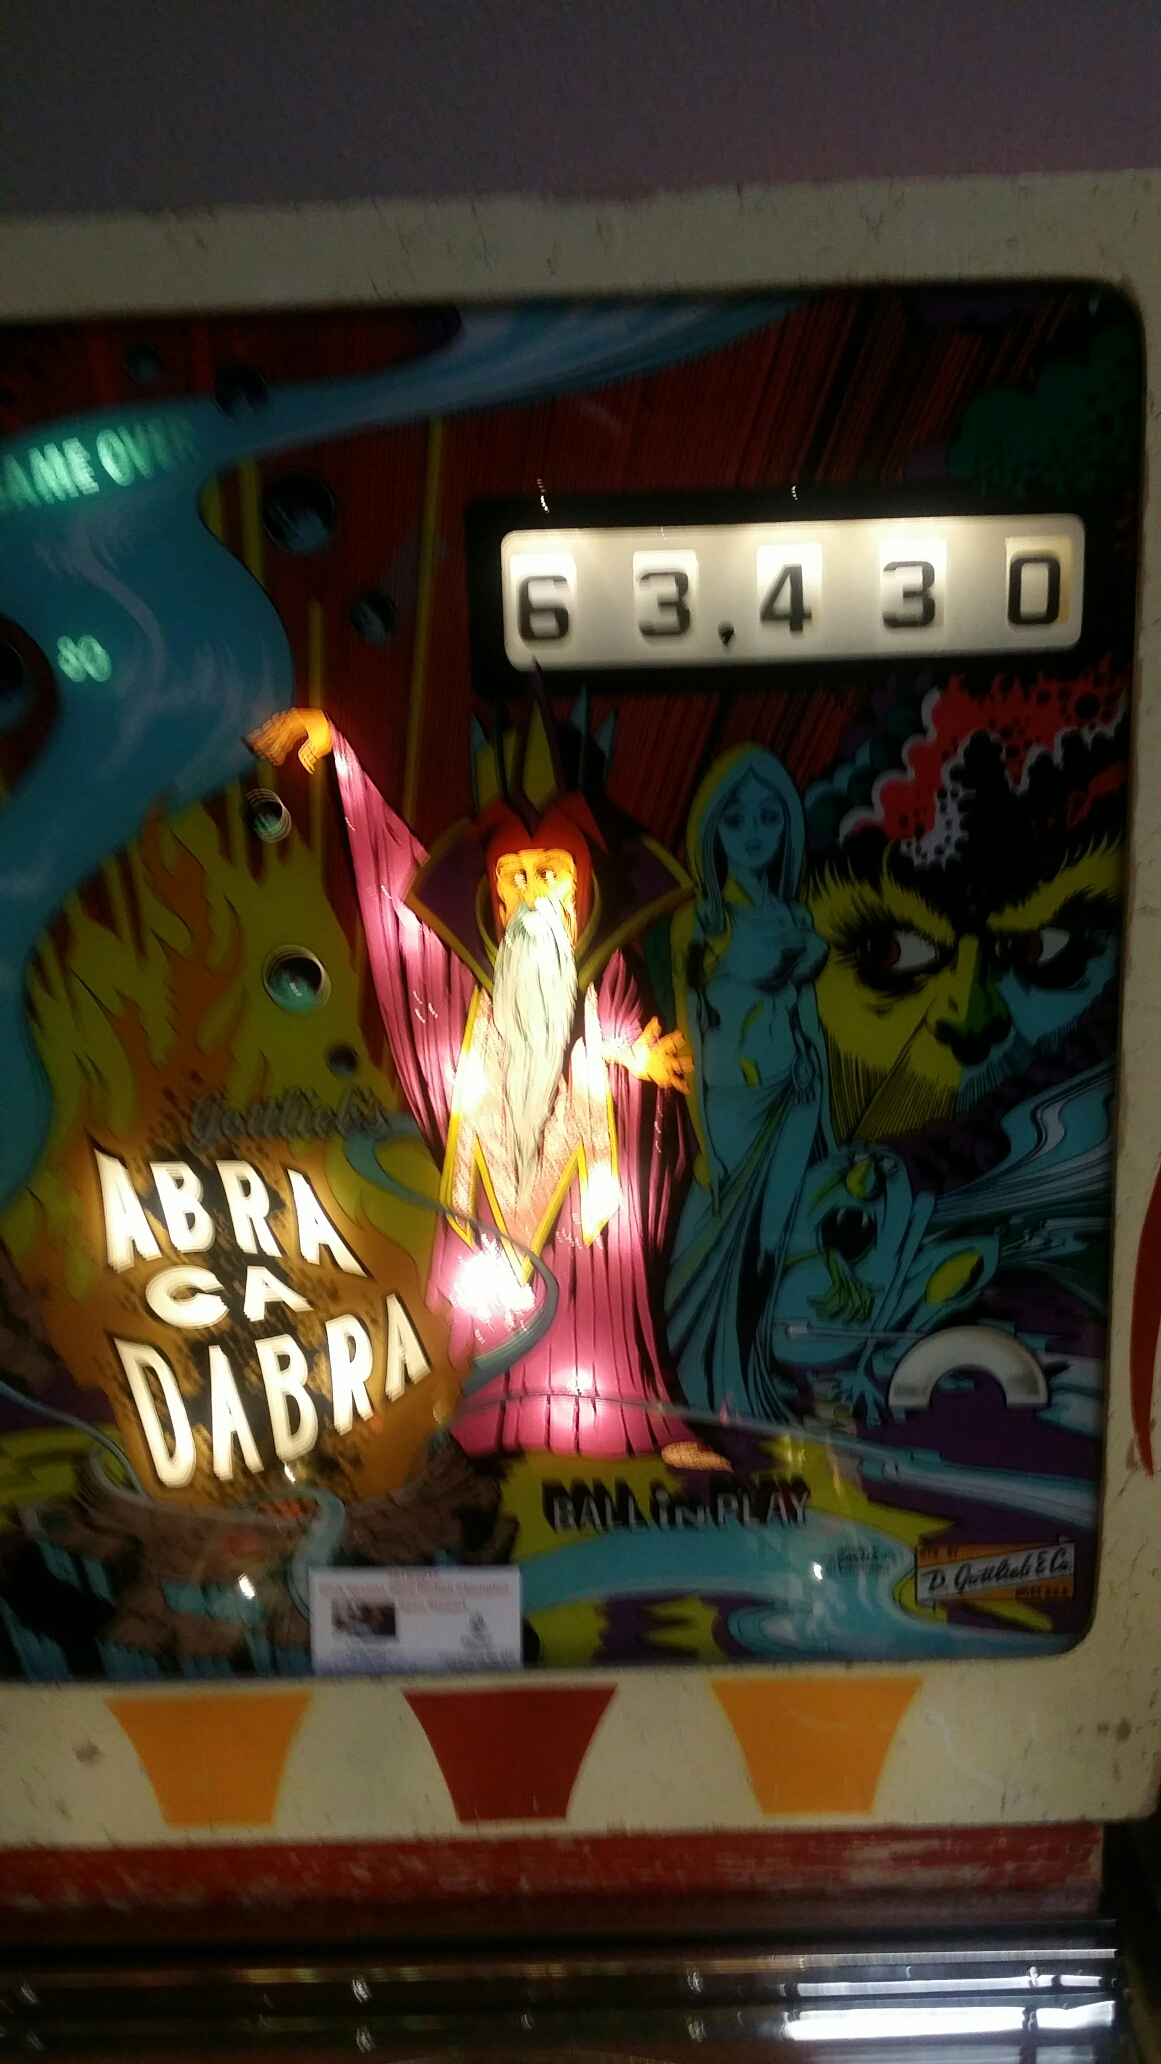 Abra Ca Dabra 63,430 points